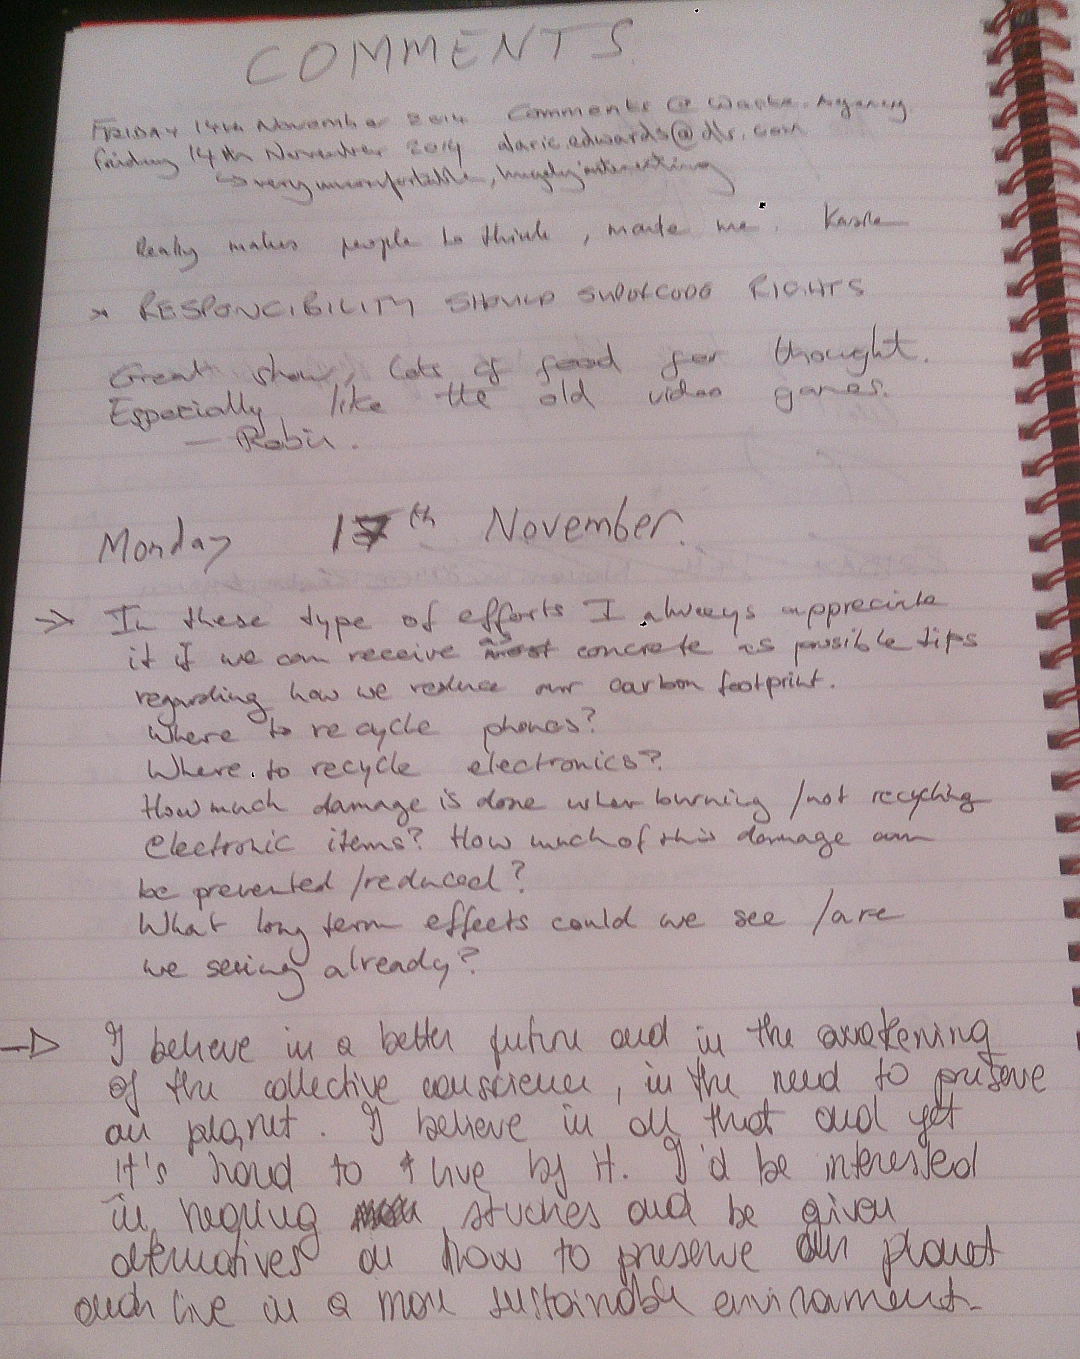 Comments Book Page 12a